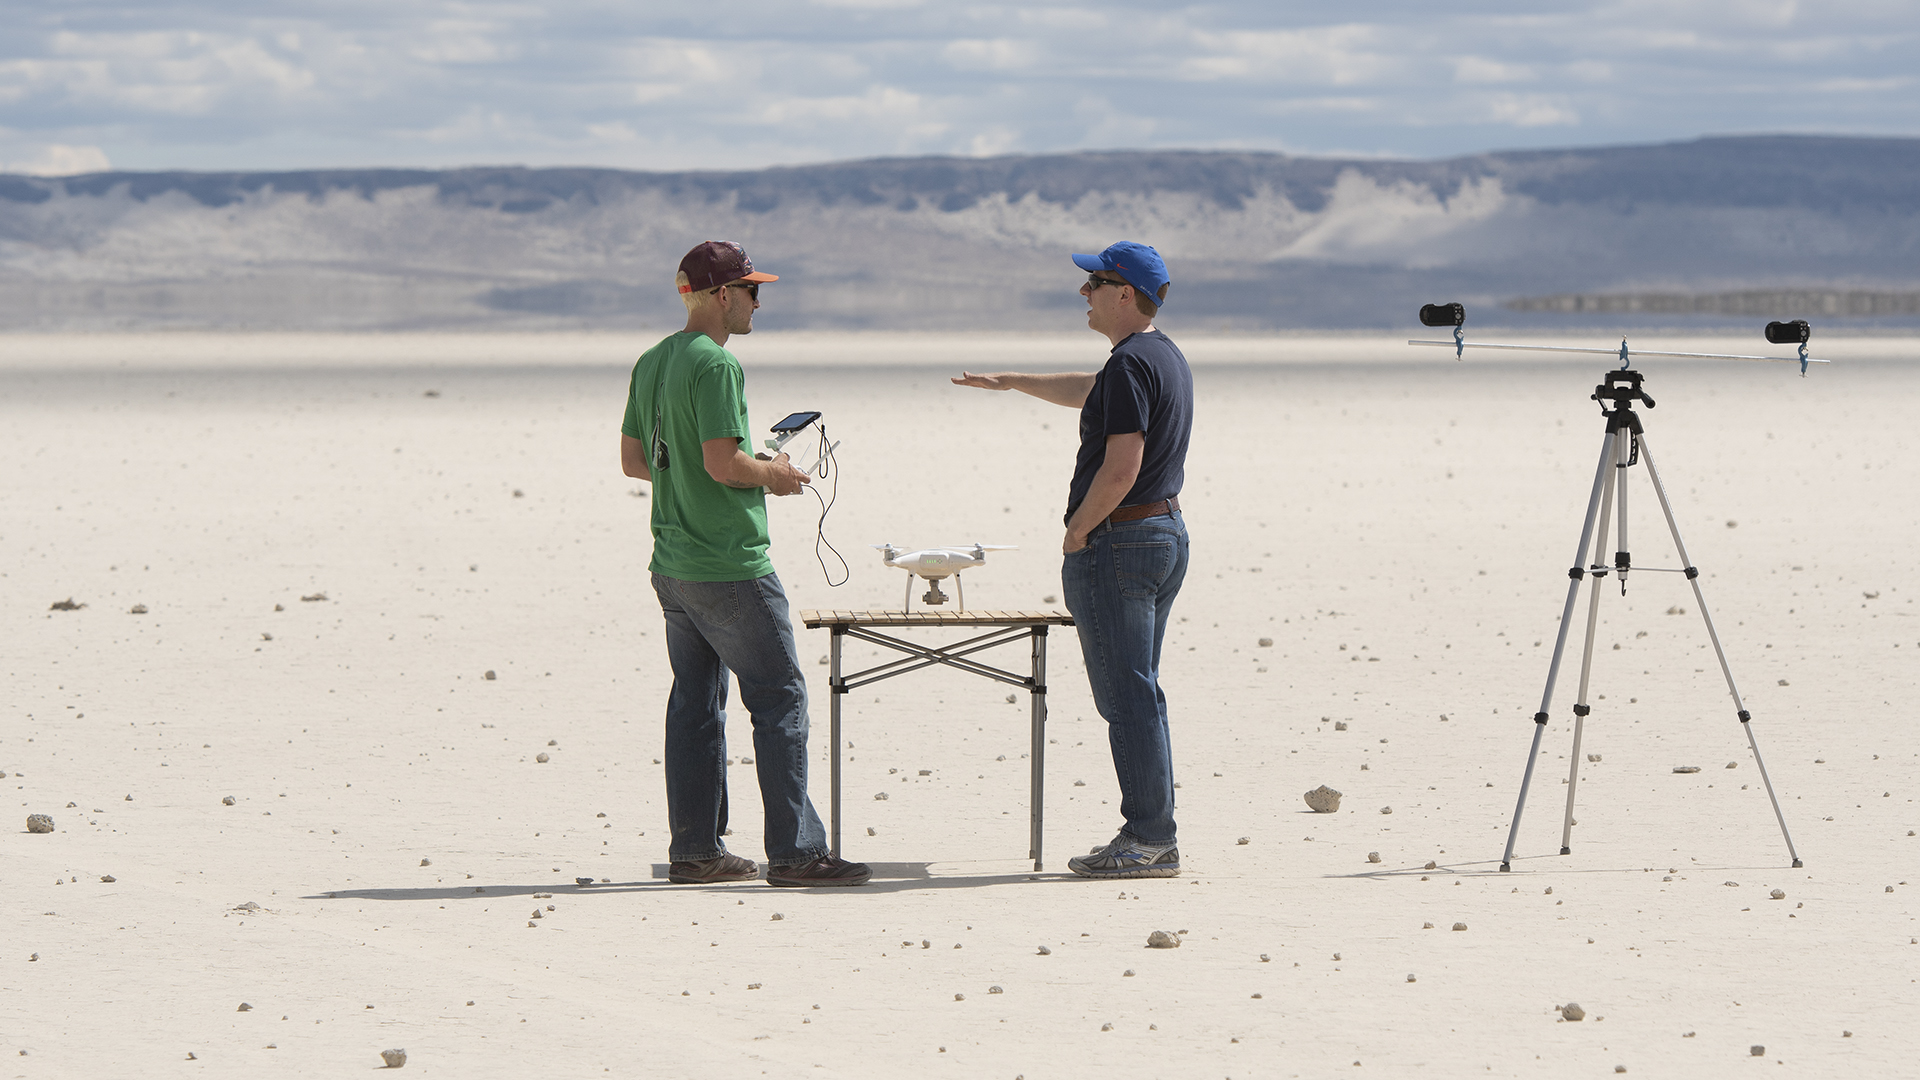 Researchers in dessert standing next to all the equipment